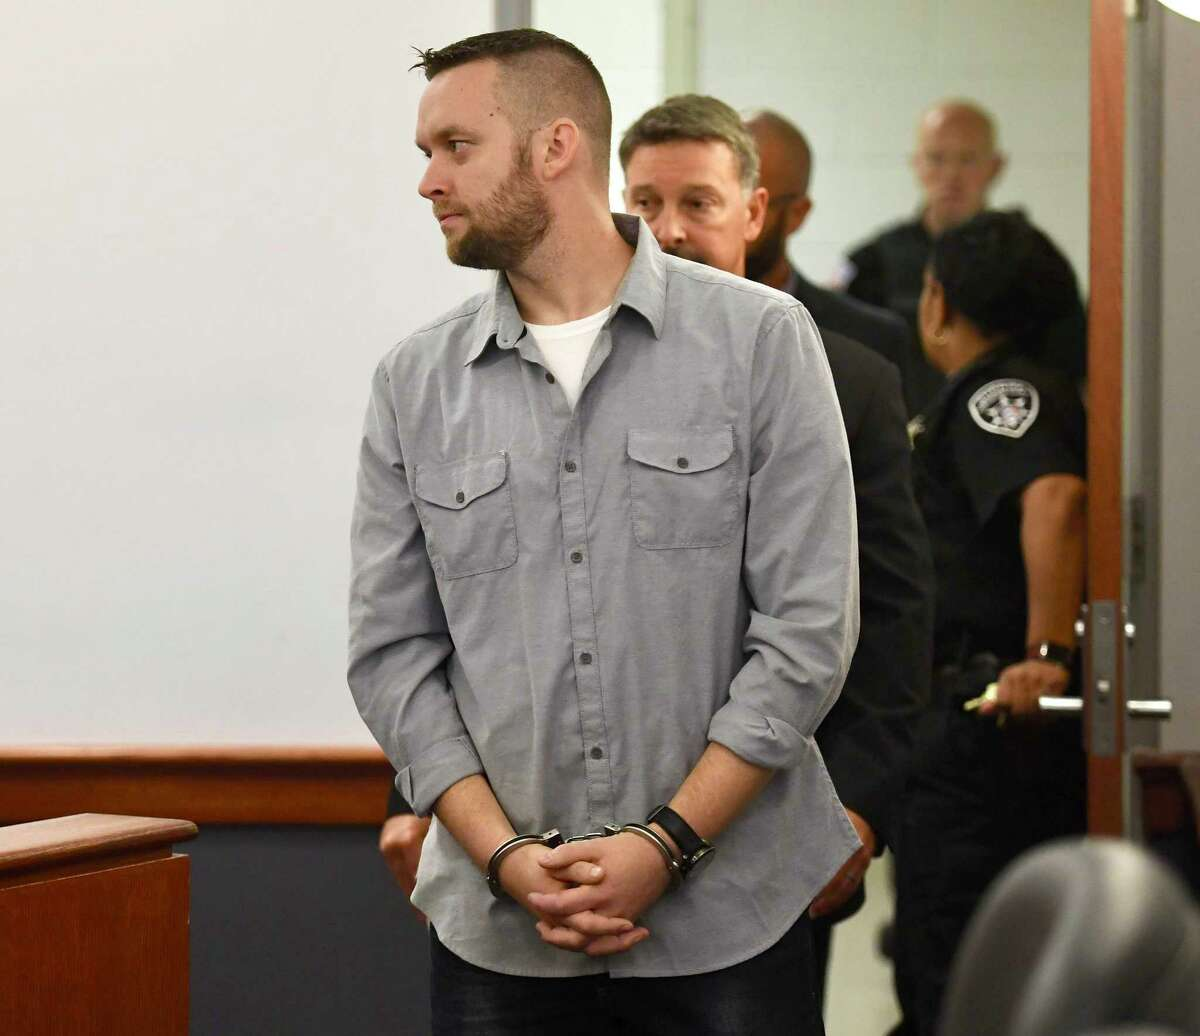 Troy code enforcement officer James Lance is arraigned in Troy City Court on Thursday morning, Sept. 13, 2018, in Troy, N.Y. Two men are facing charges in connection with a state investigation of the sale of tax-delinquent properties to Troy employees, city officials confirmed Thursday. (Skip Dickstein/Times Union)